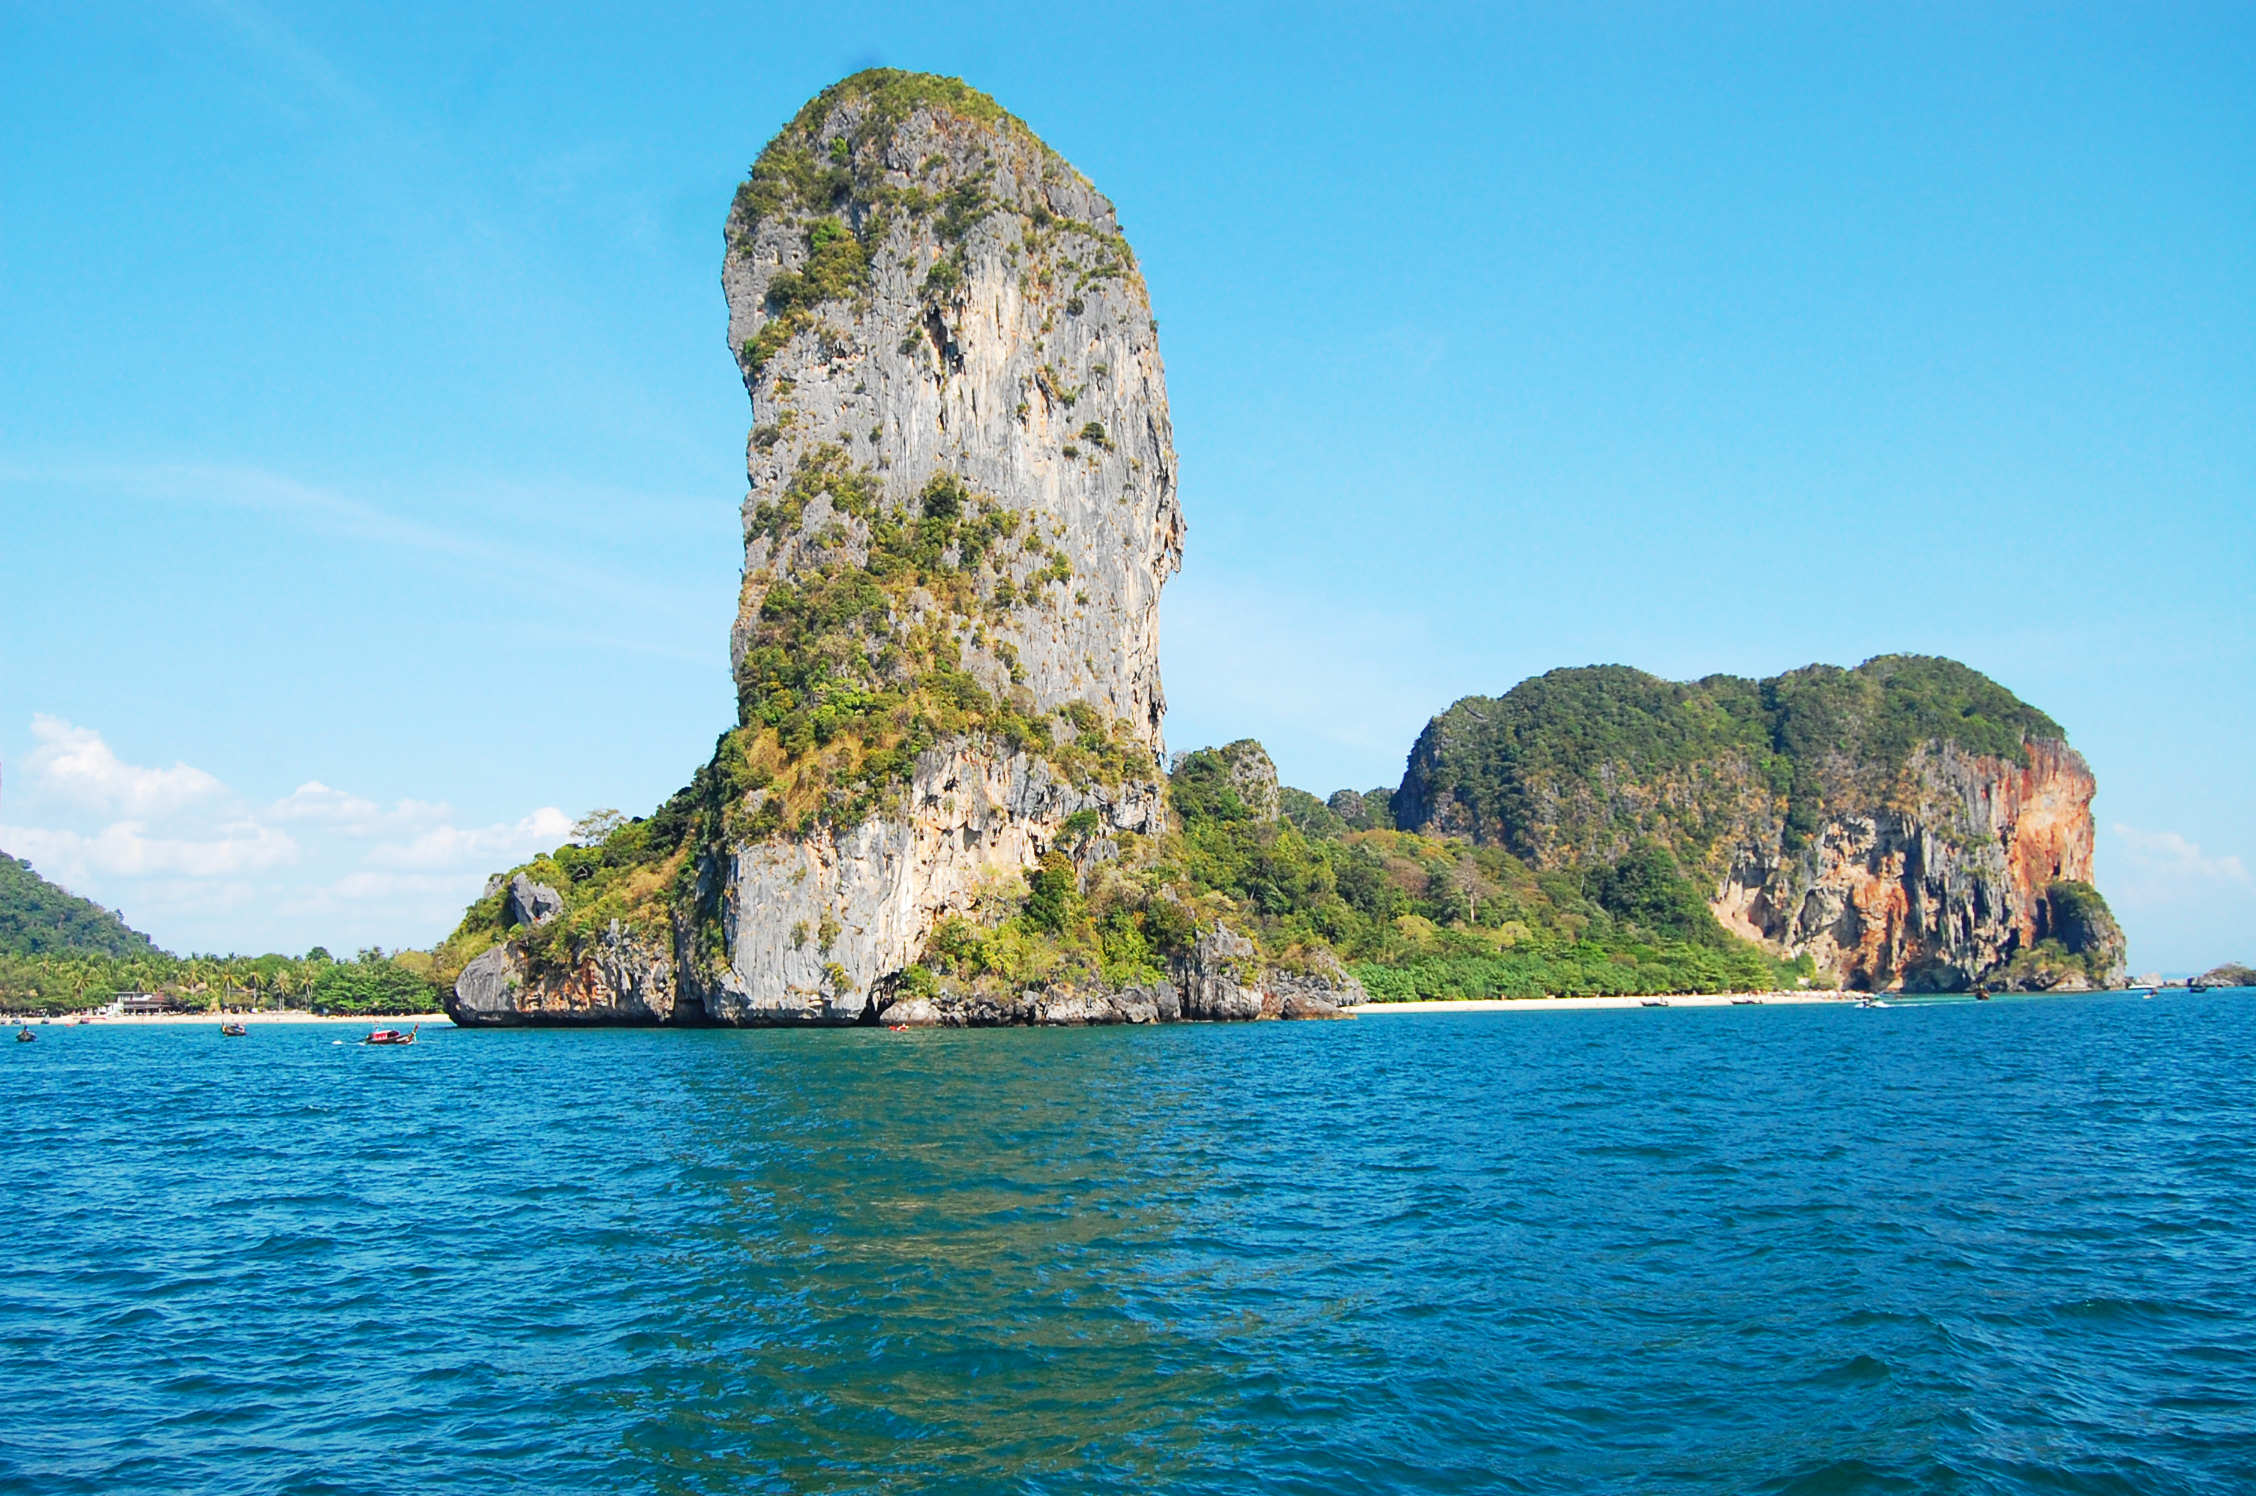 Península de Railay